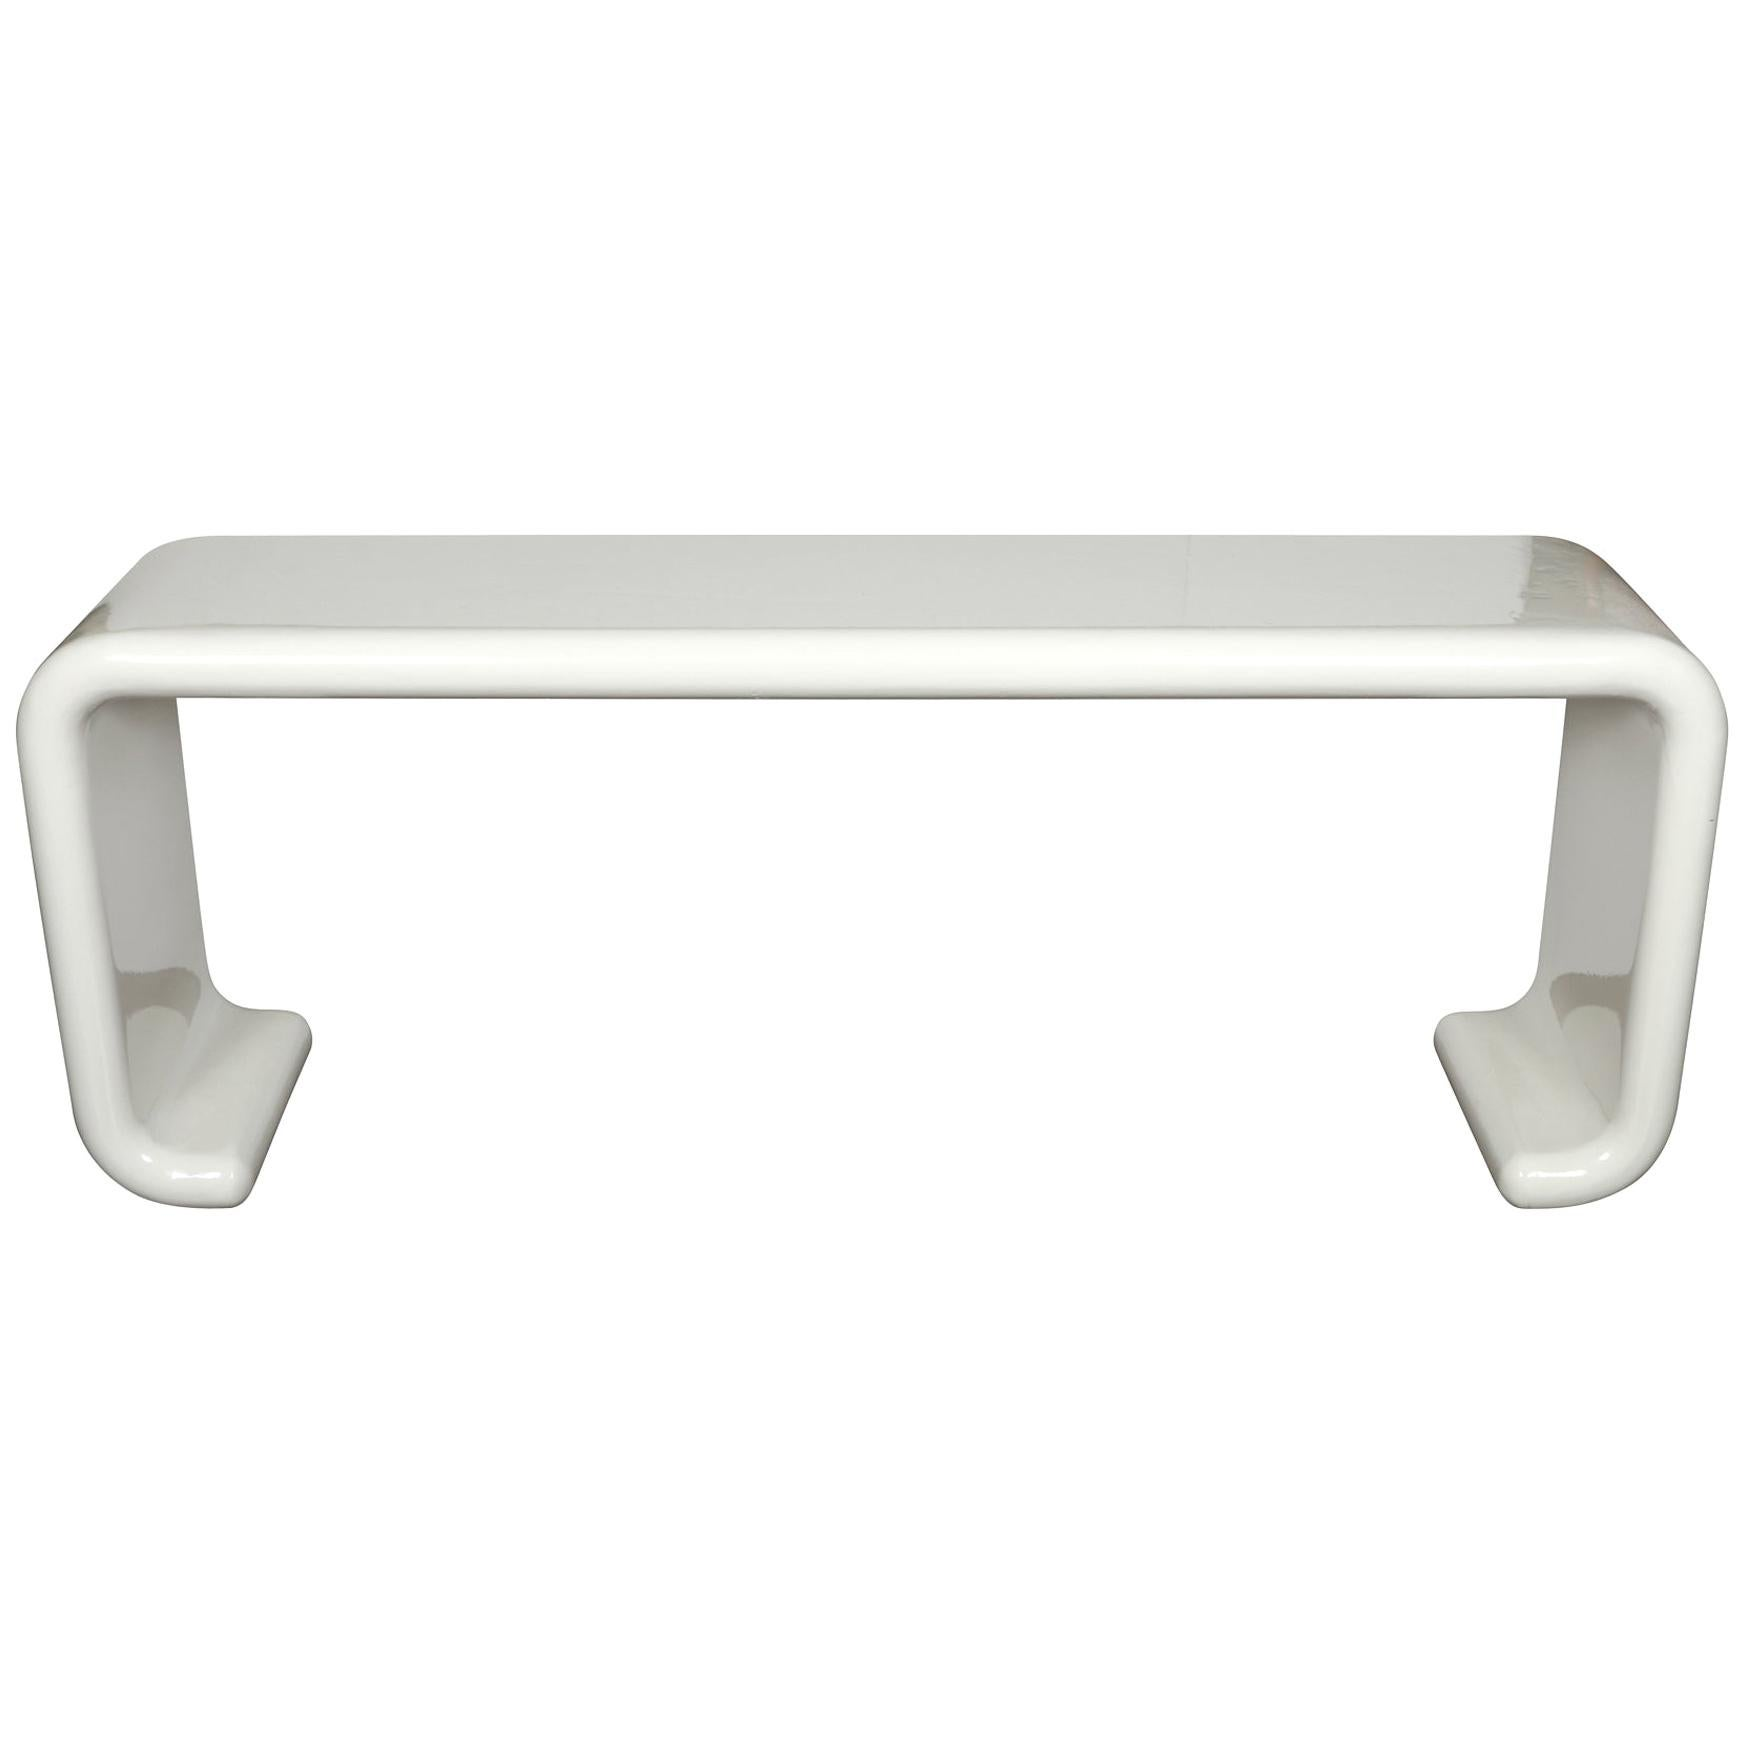 White Karl Springer style painted waterfall console